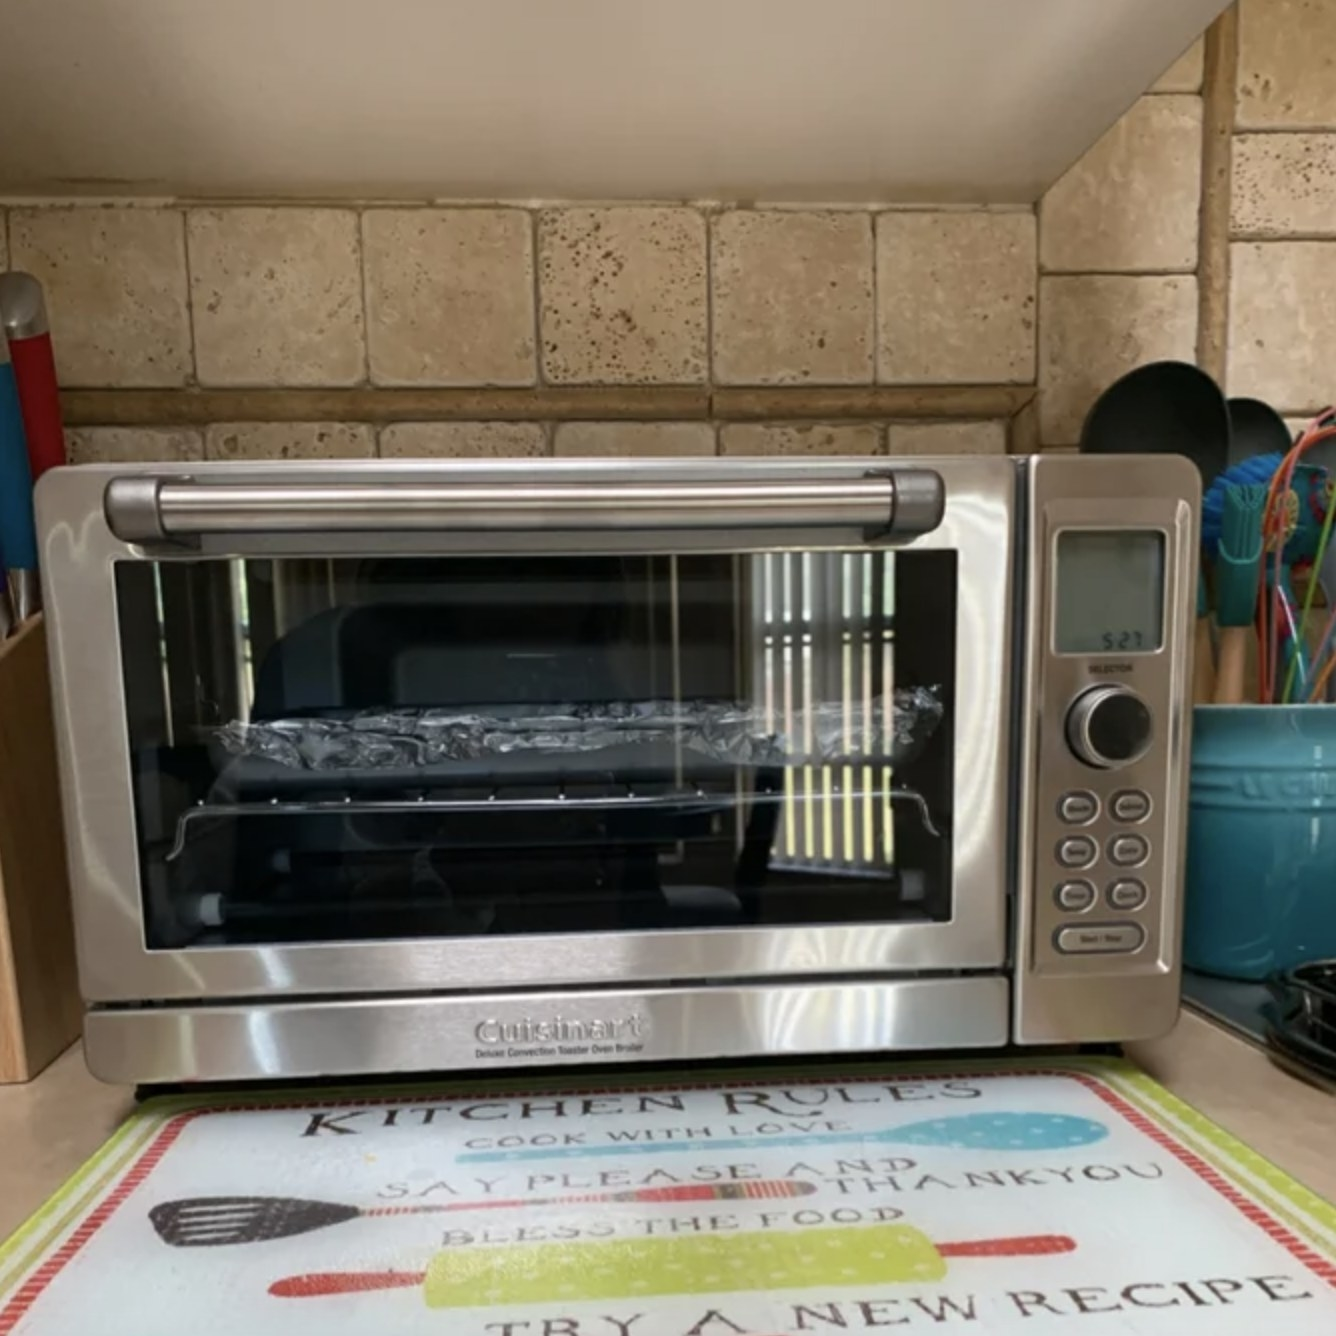 the toaster oven in the reviewer's kitchen